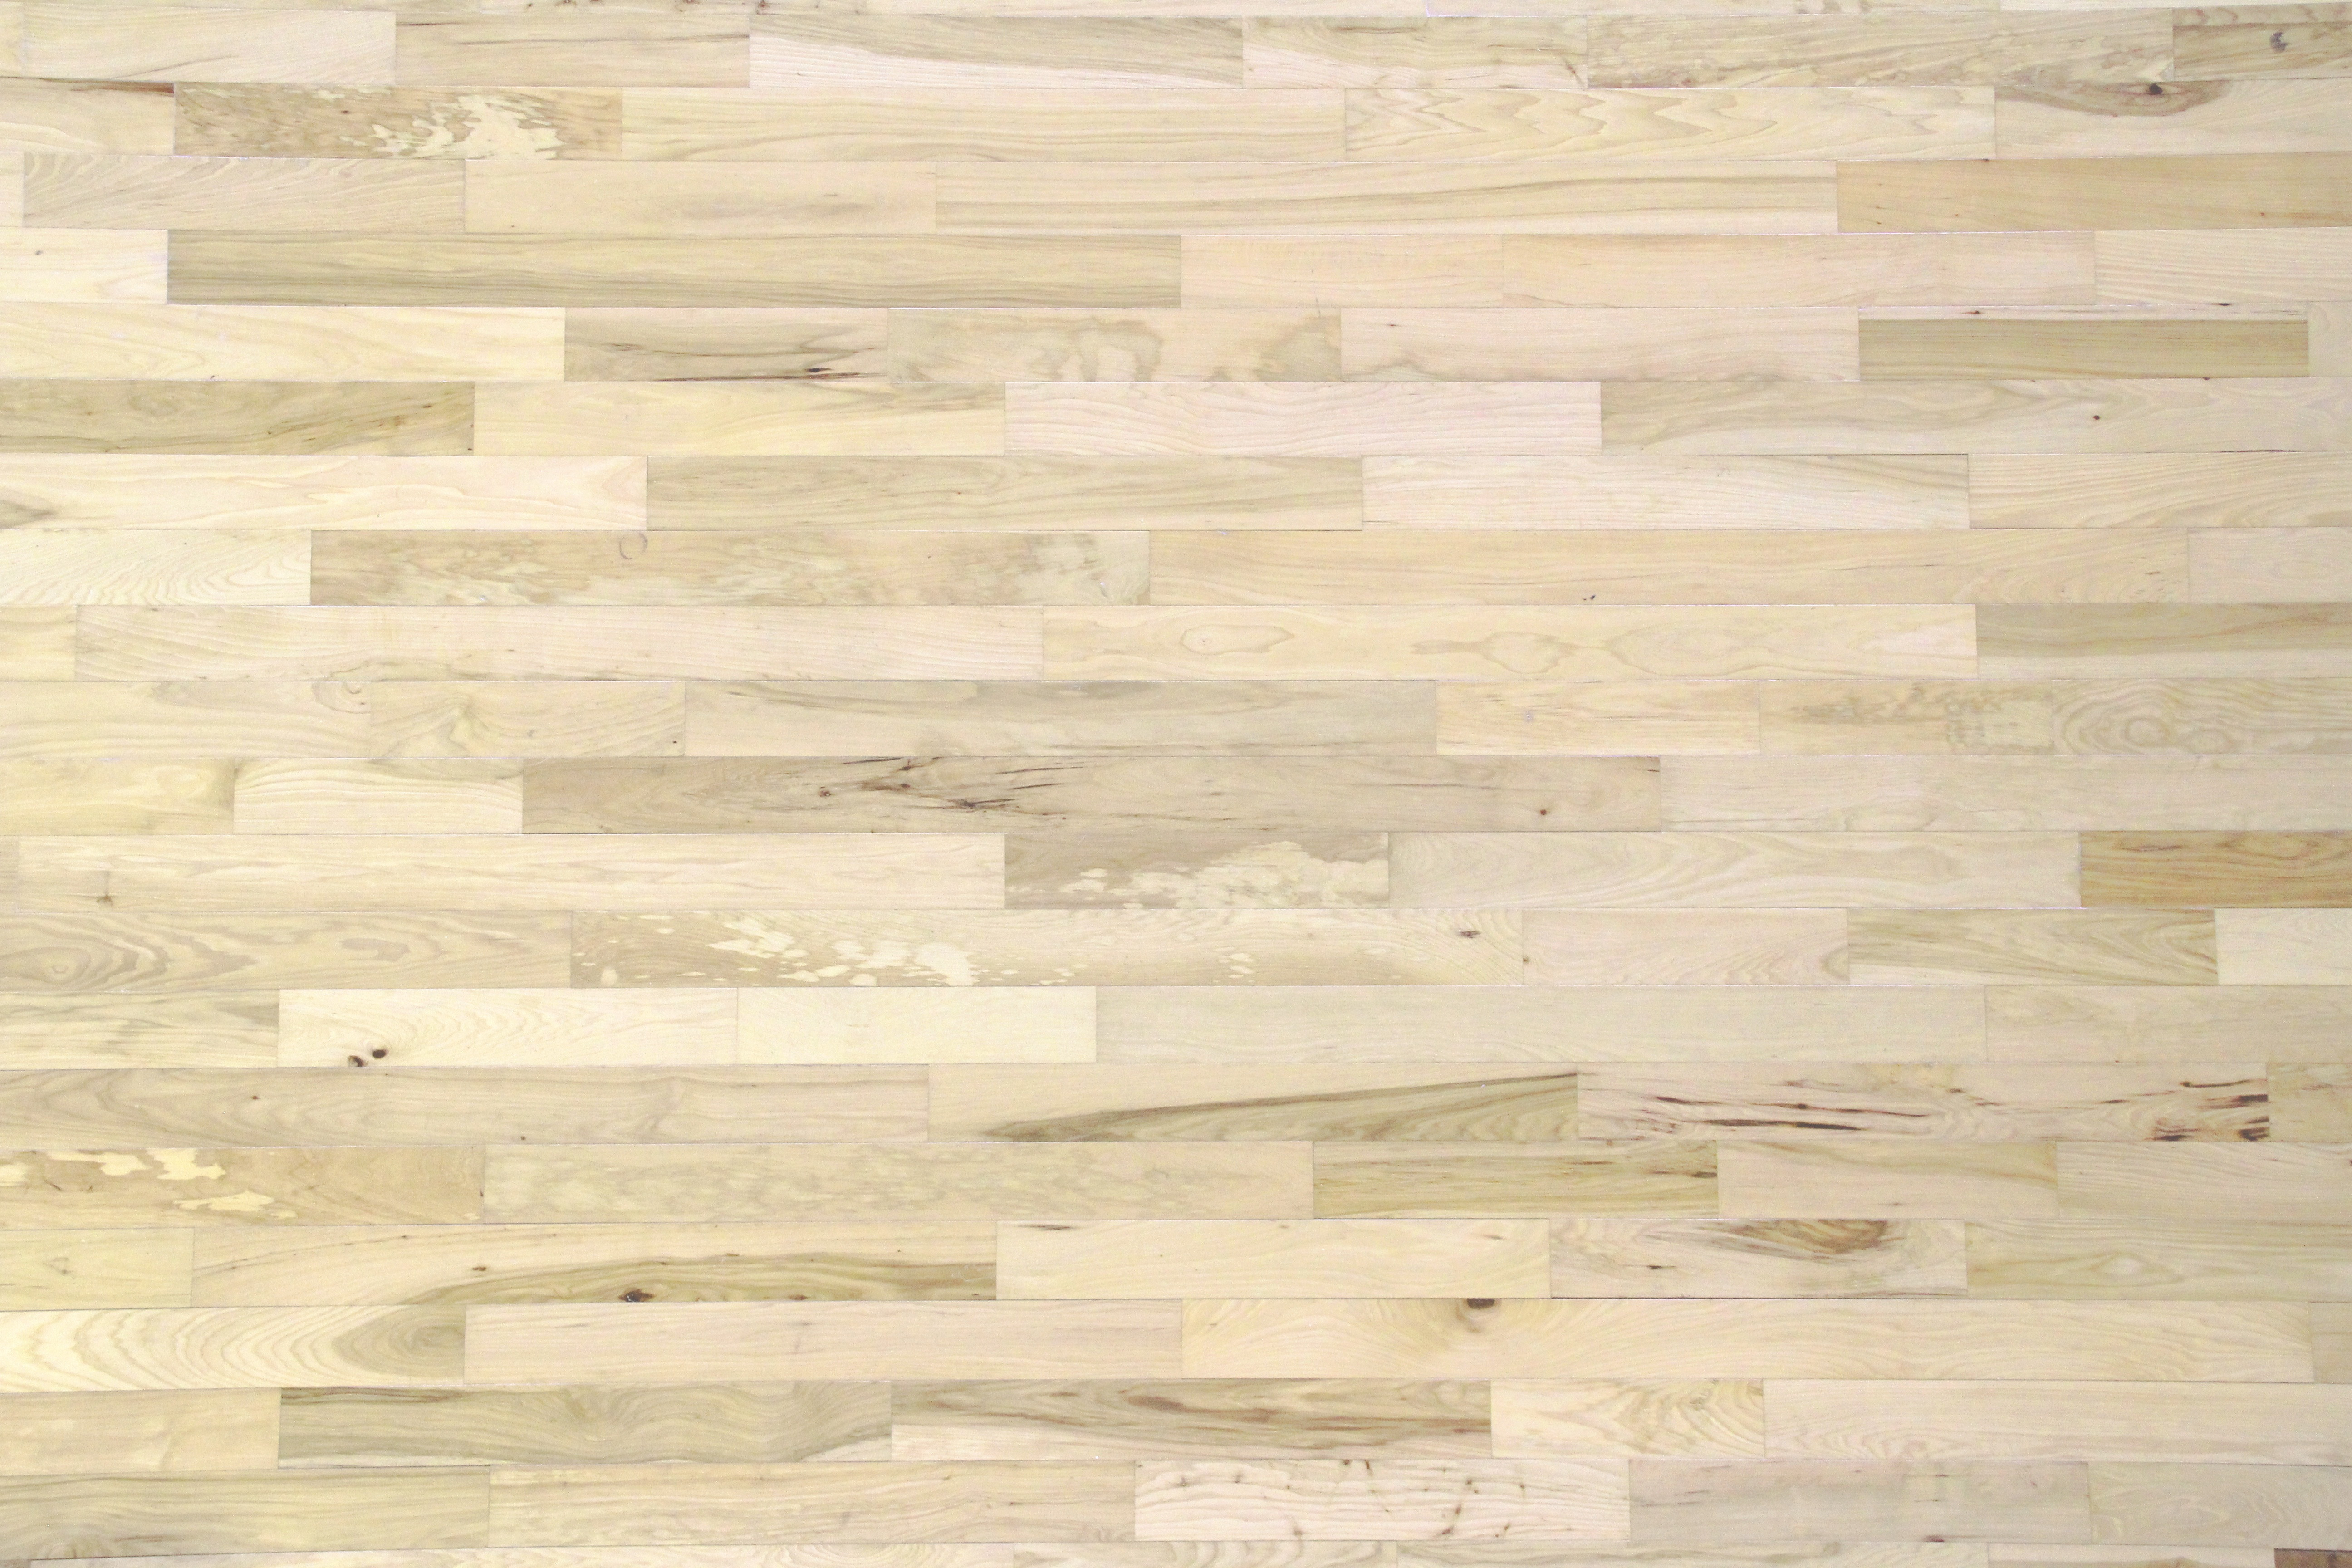 gray hardwood floor stain of free images texture wall pine construction tile lumber within wood texture floor wall pine construction tile lumber surface wood floor basketball court hardwood wooden flooring